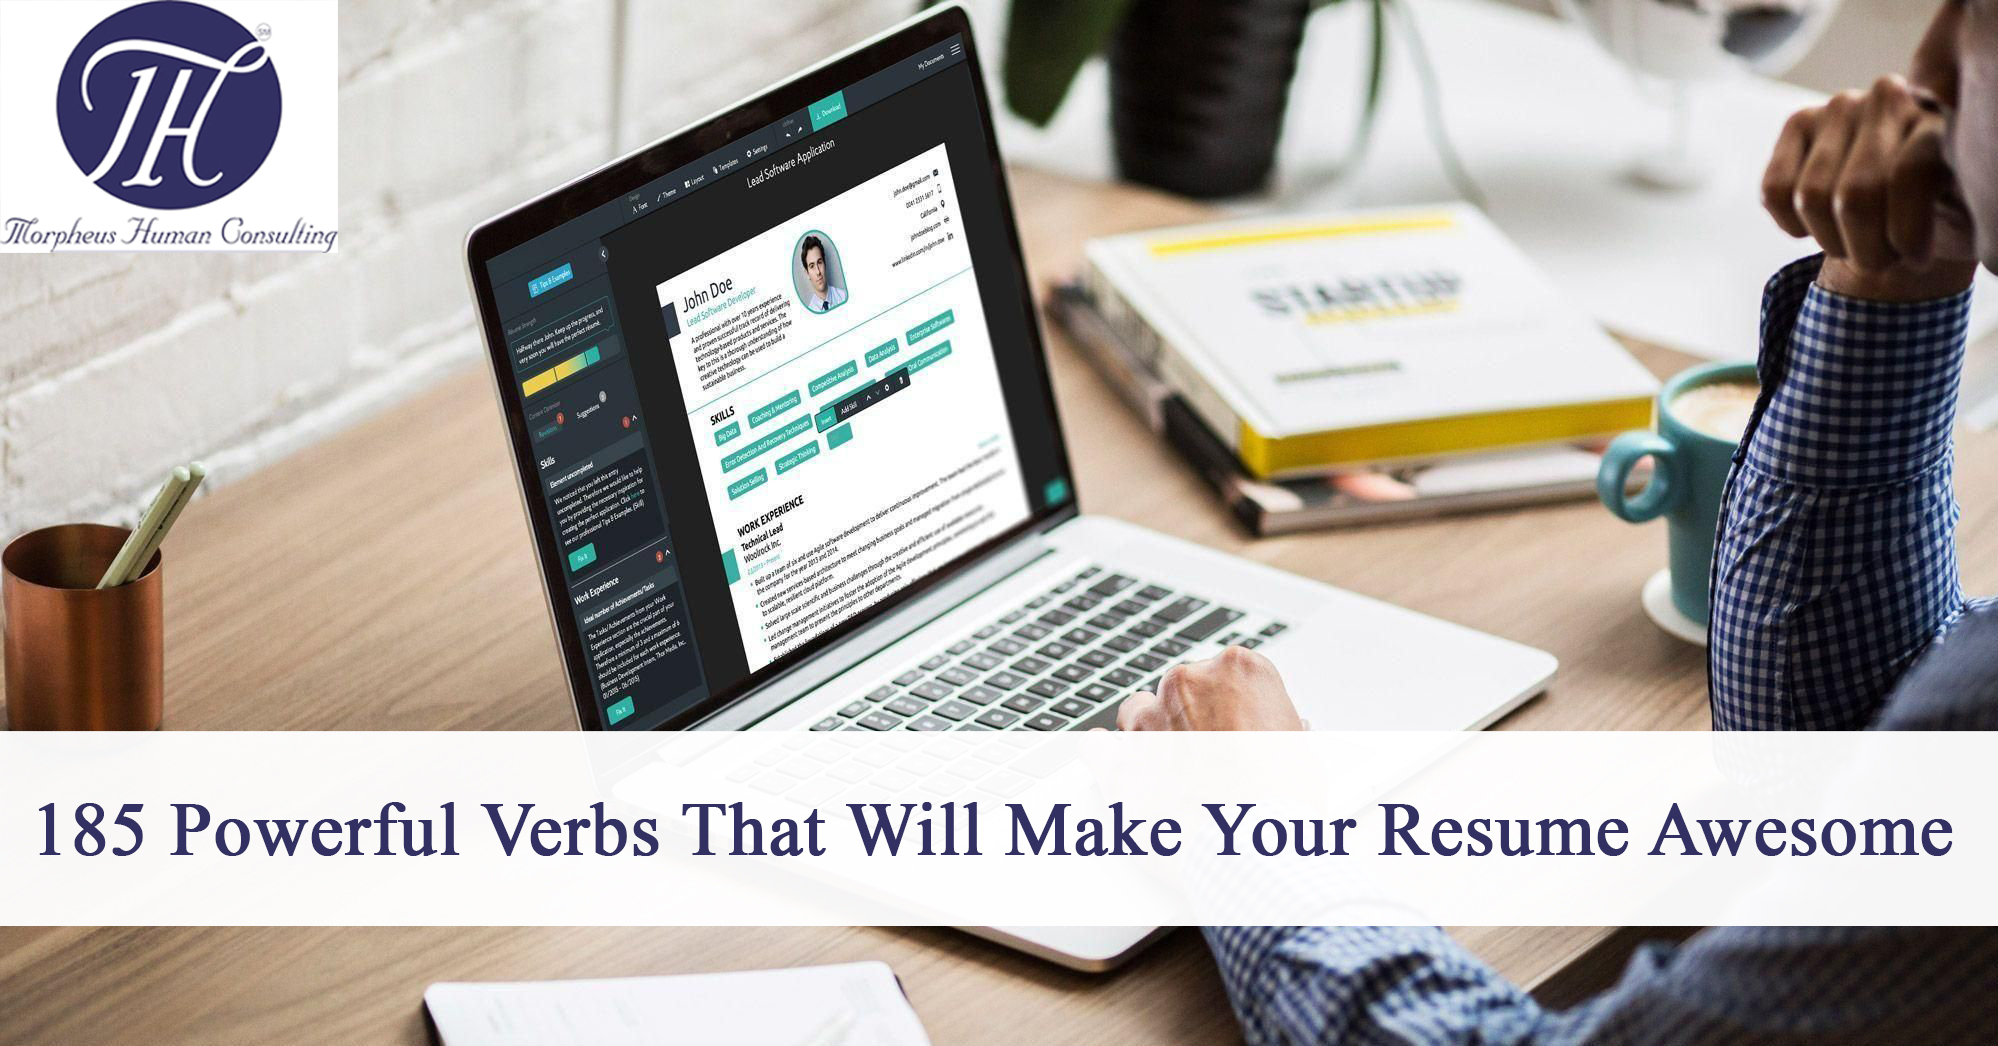 185 Powerful Verbs That Will Make Your Resume Awesome